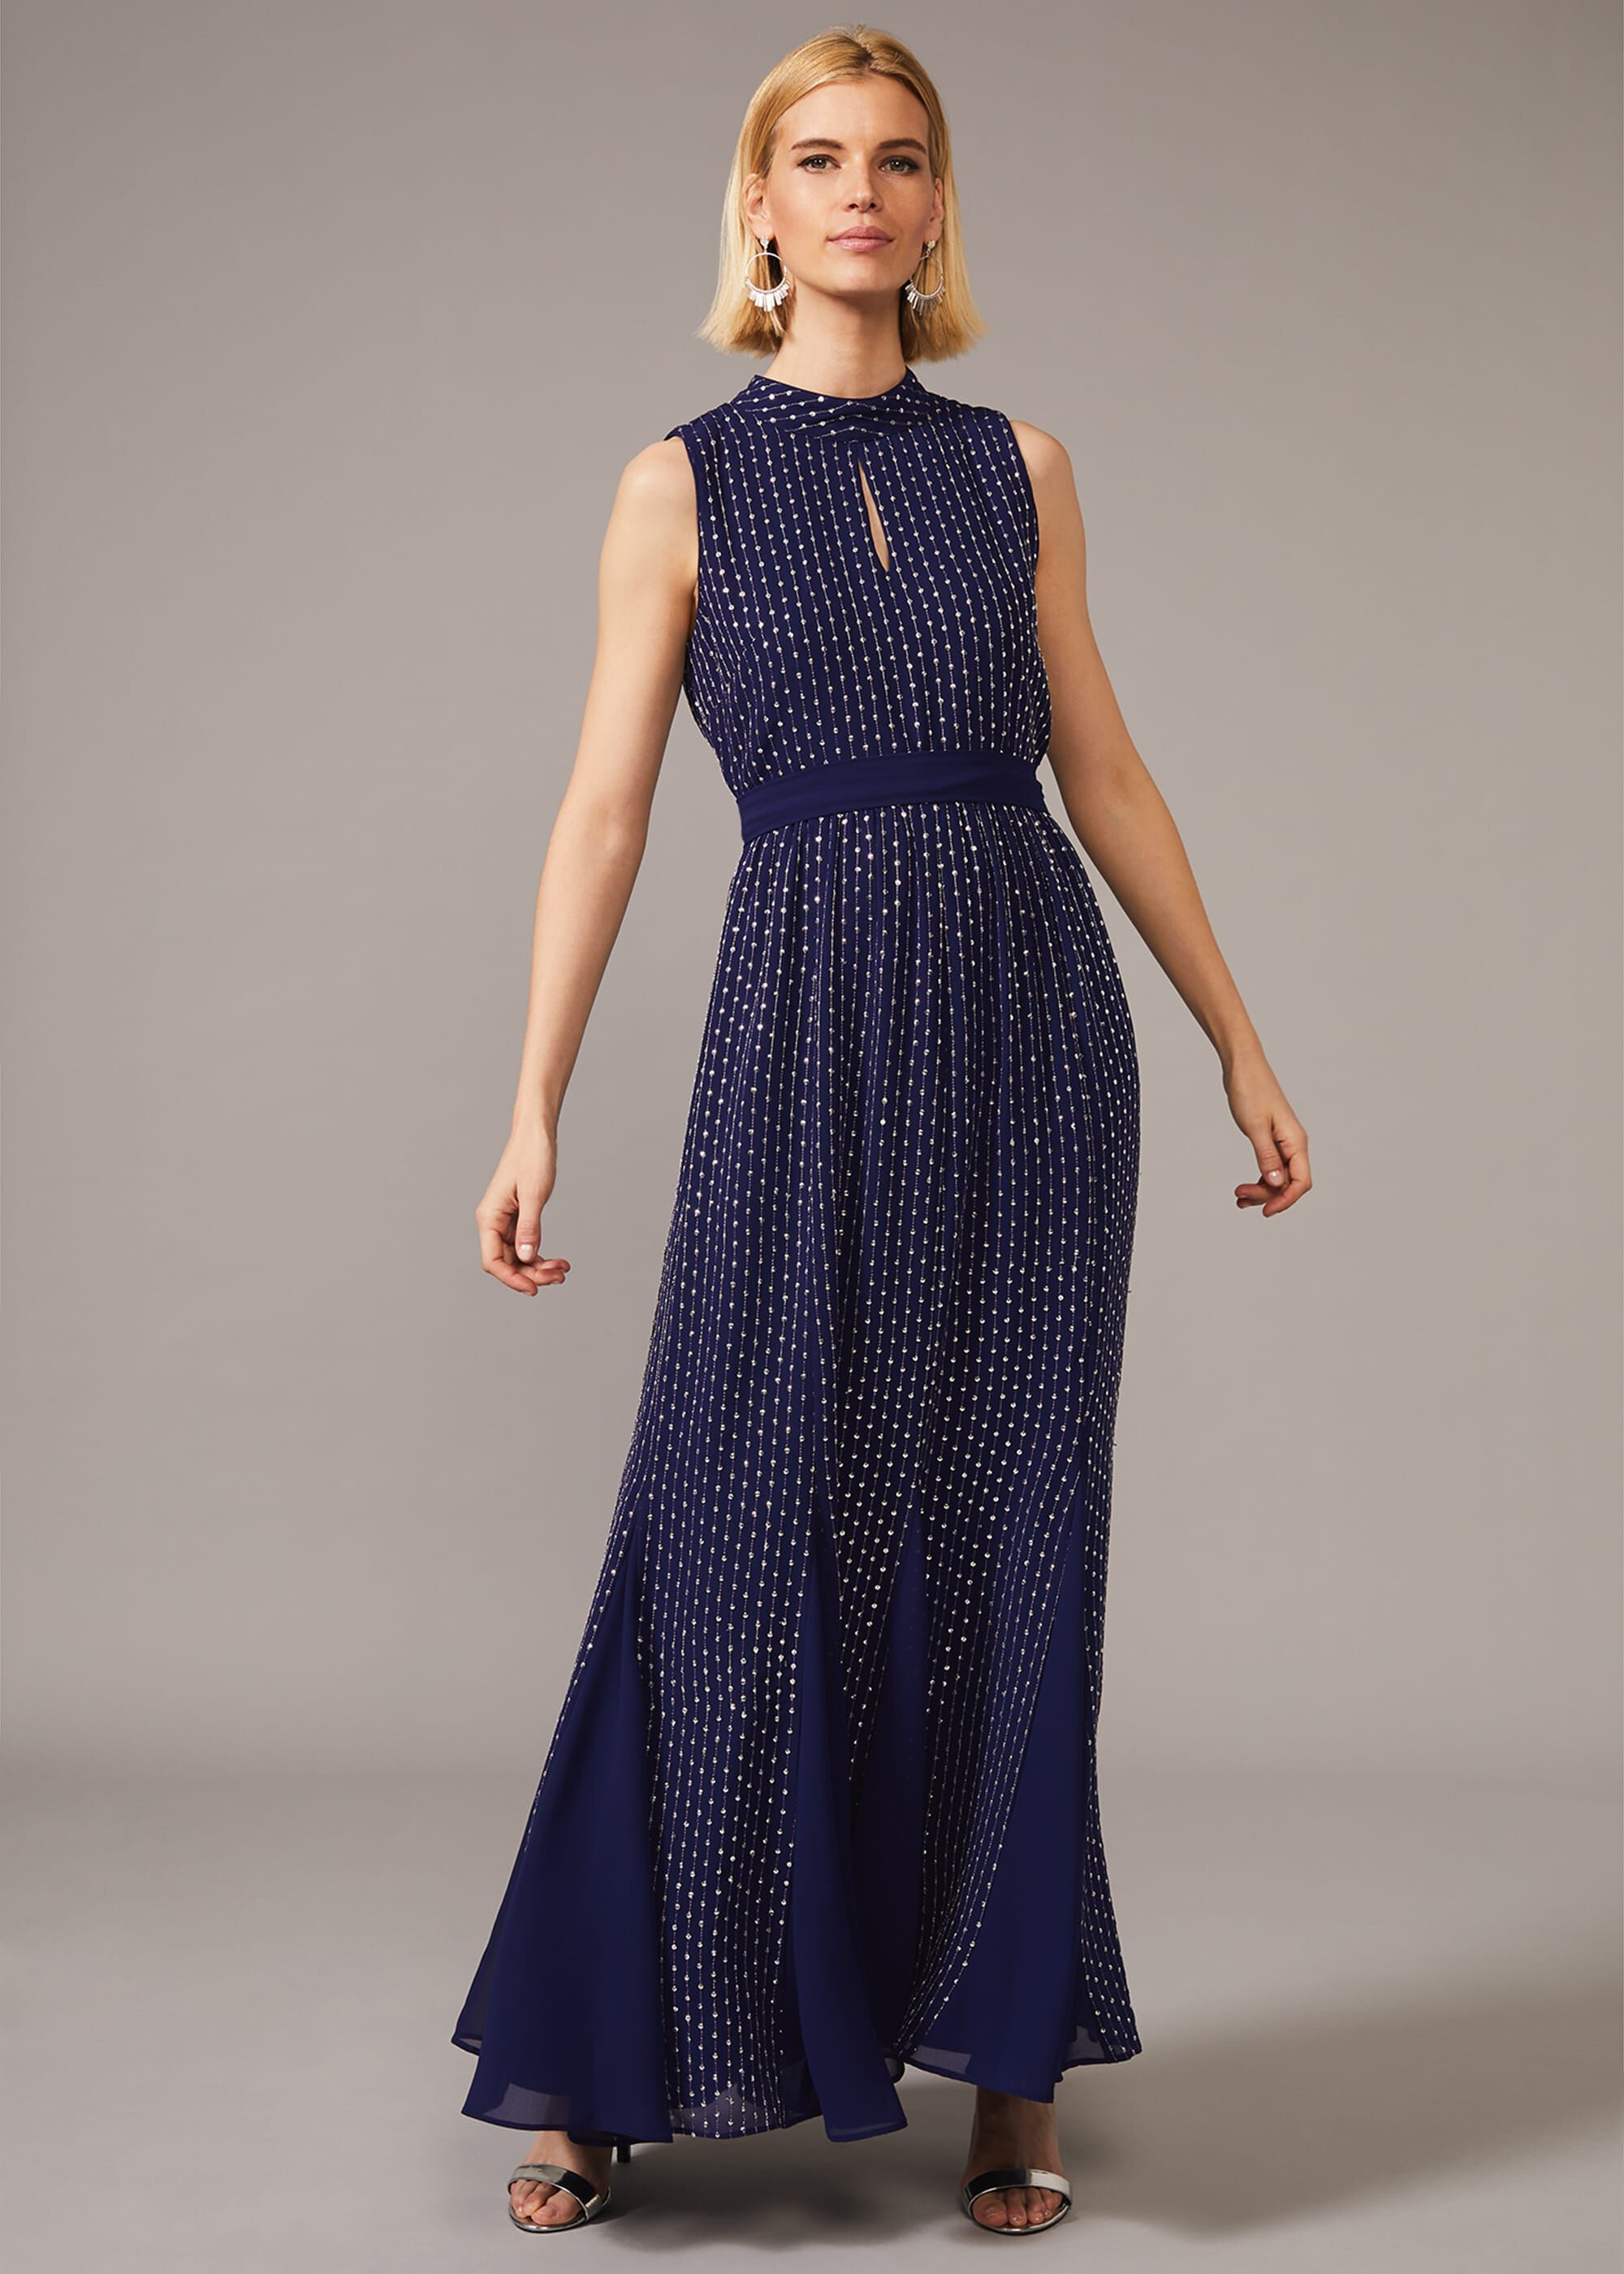 Phase Eight Pippa Embellished Blouson Dress, Blue, Maxi, Occasion Dress